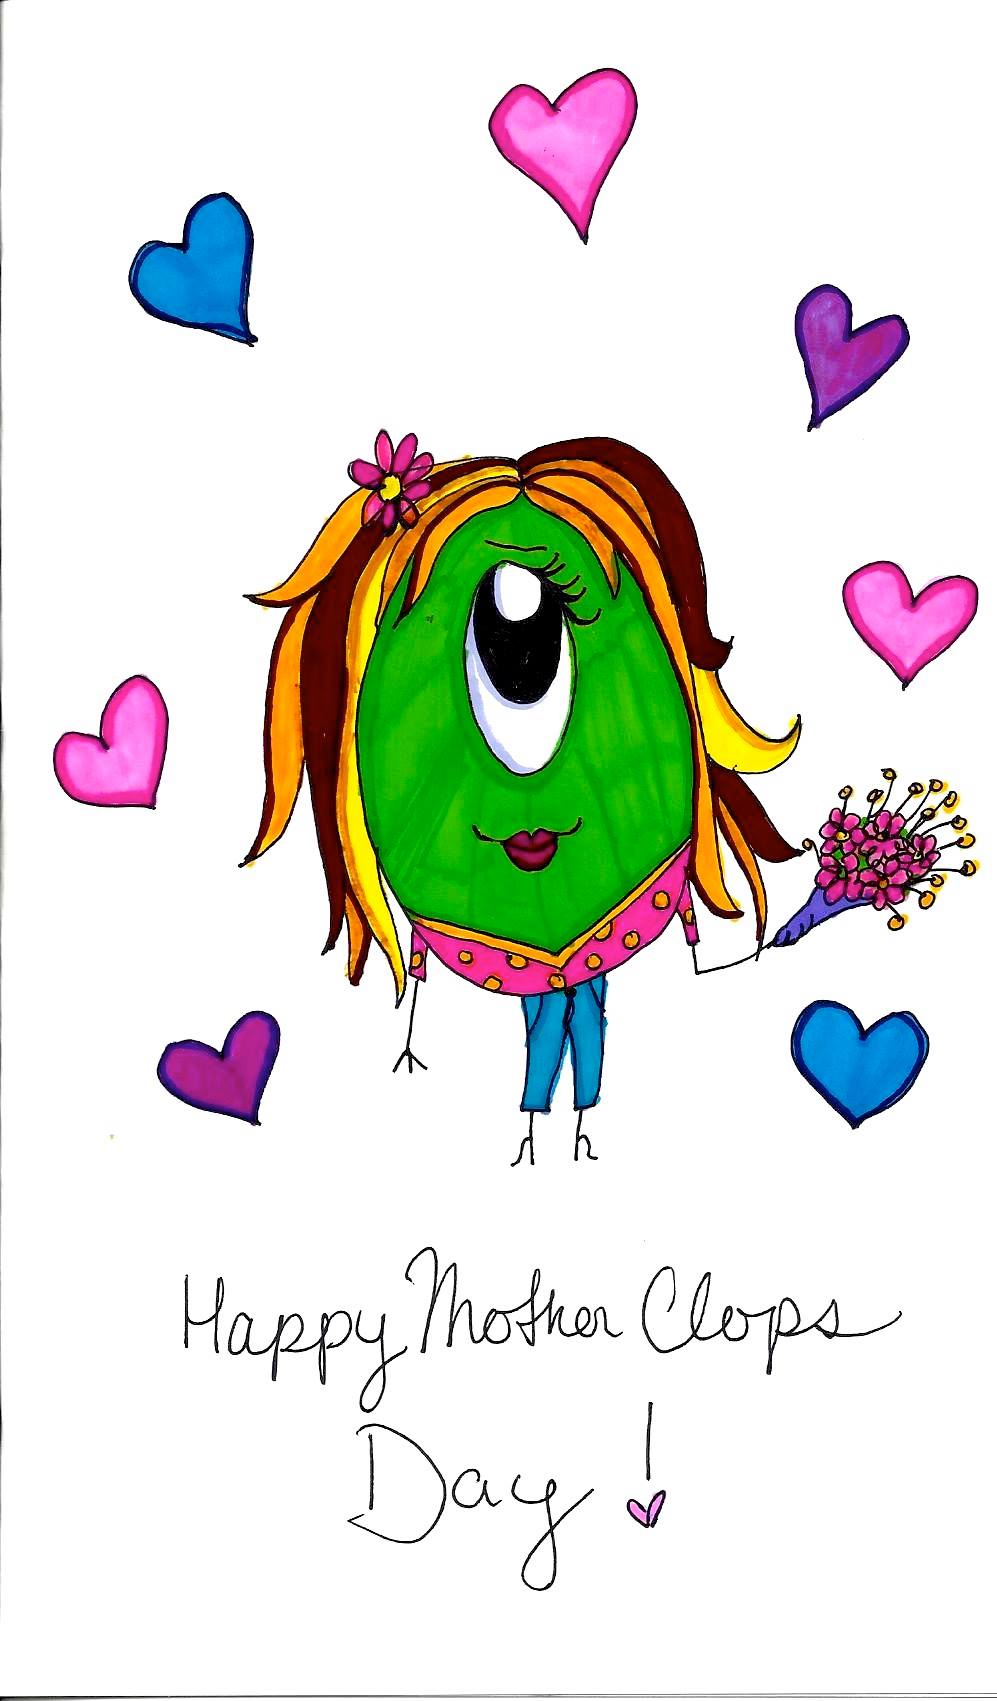 Happy Mother Clops Day! 2014